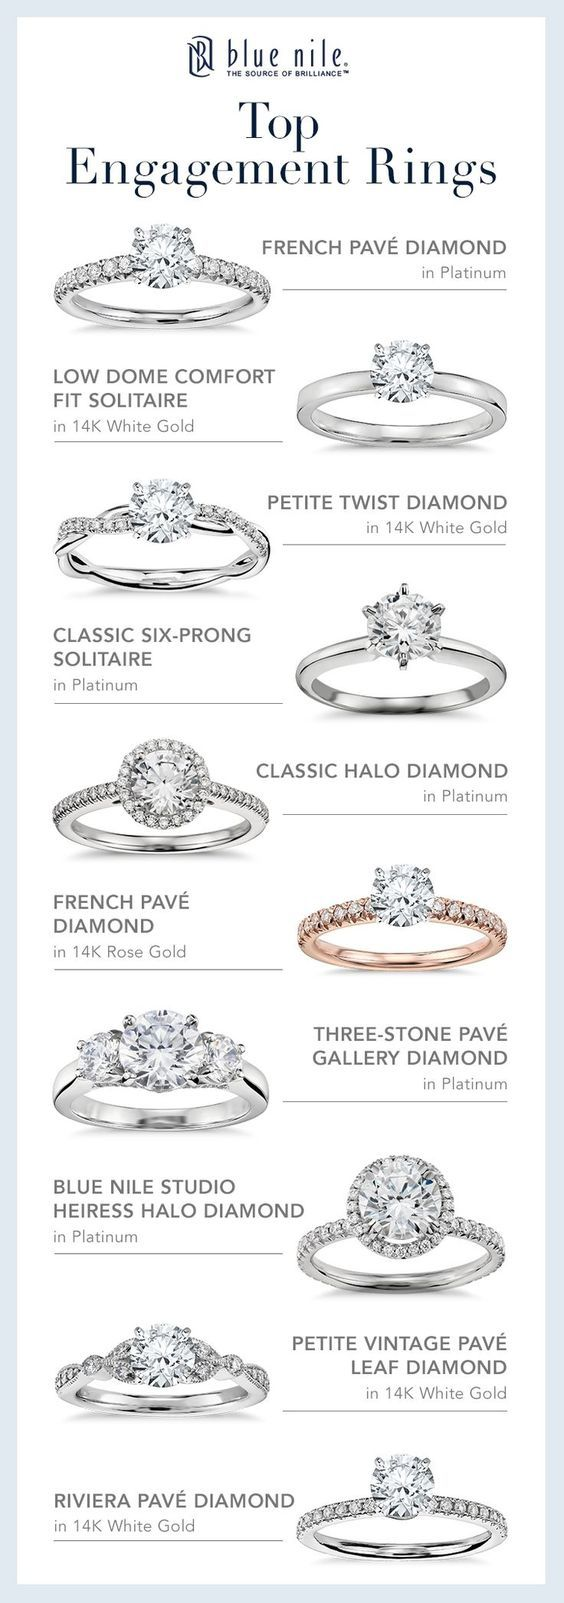 style bloom french ring tacori full engagement rings